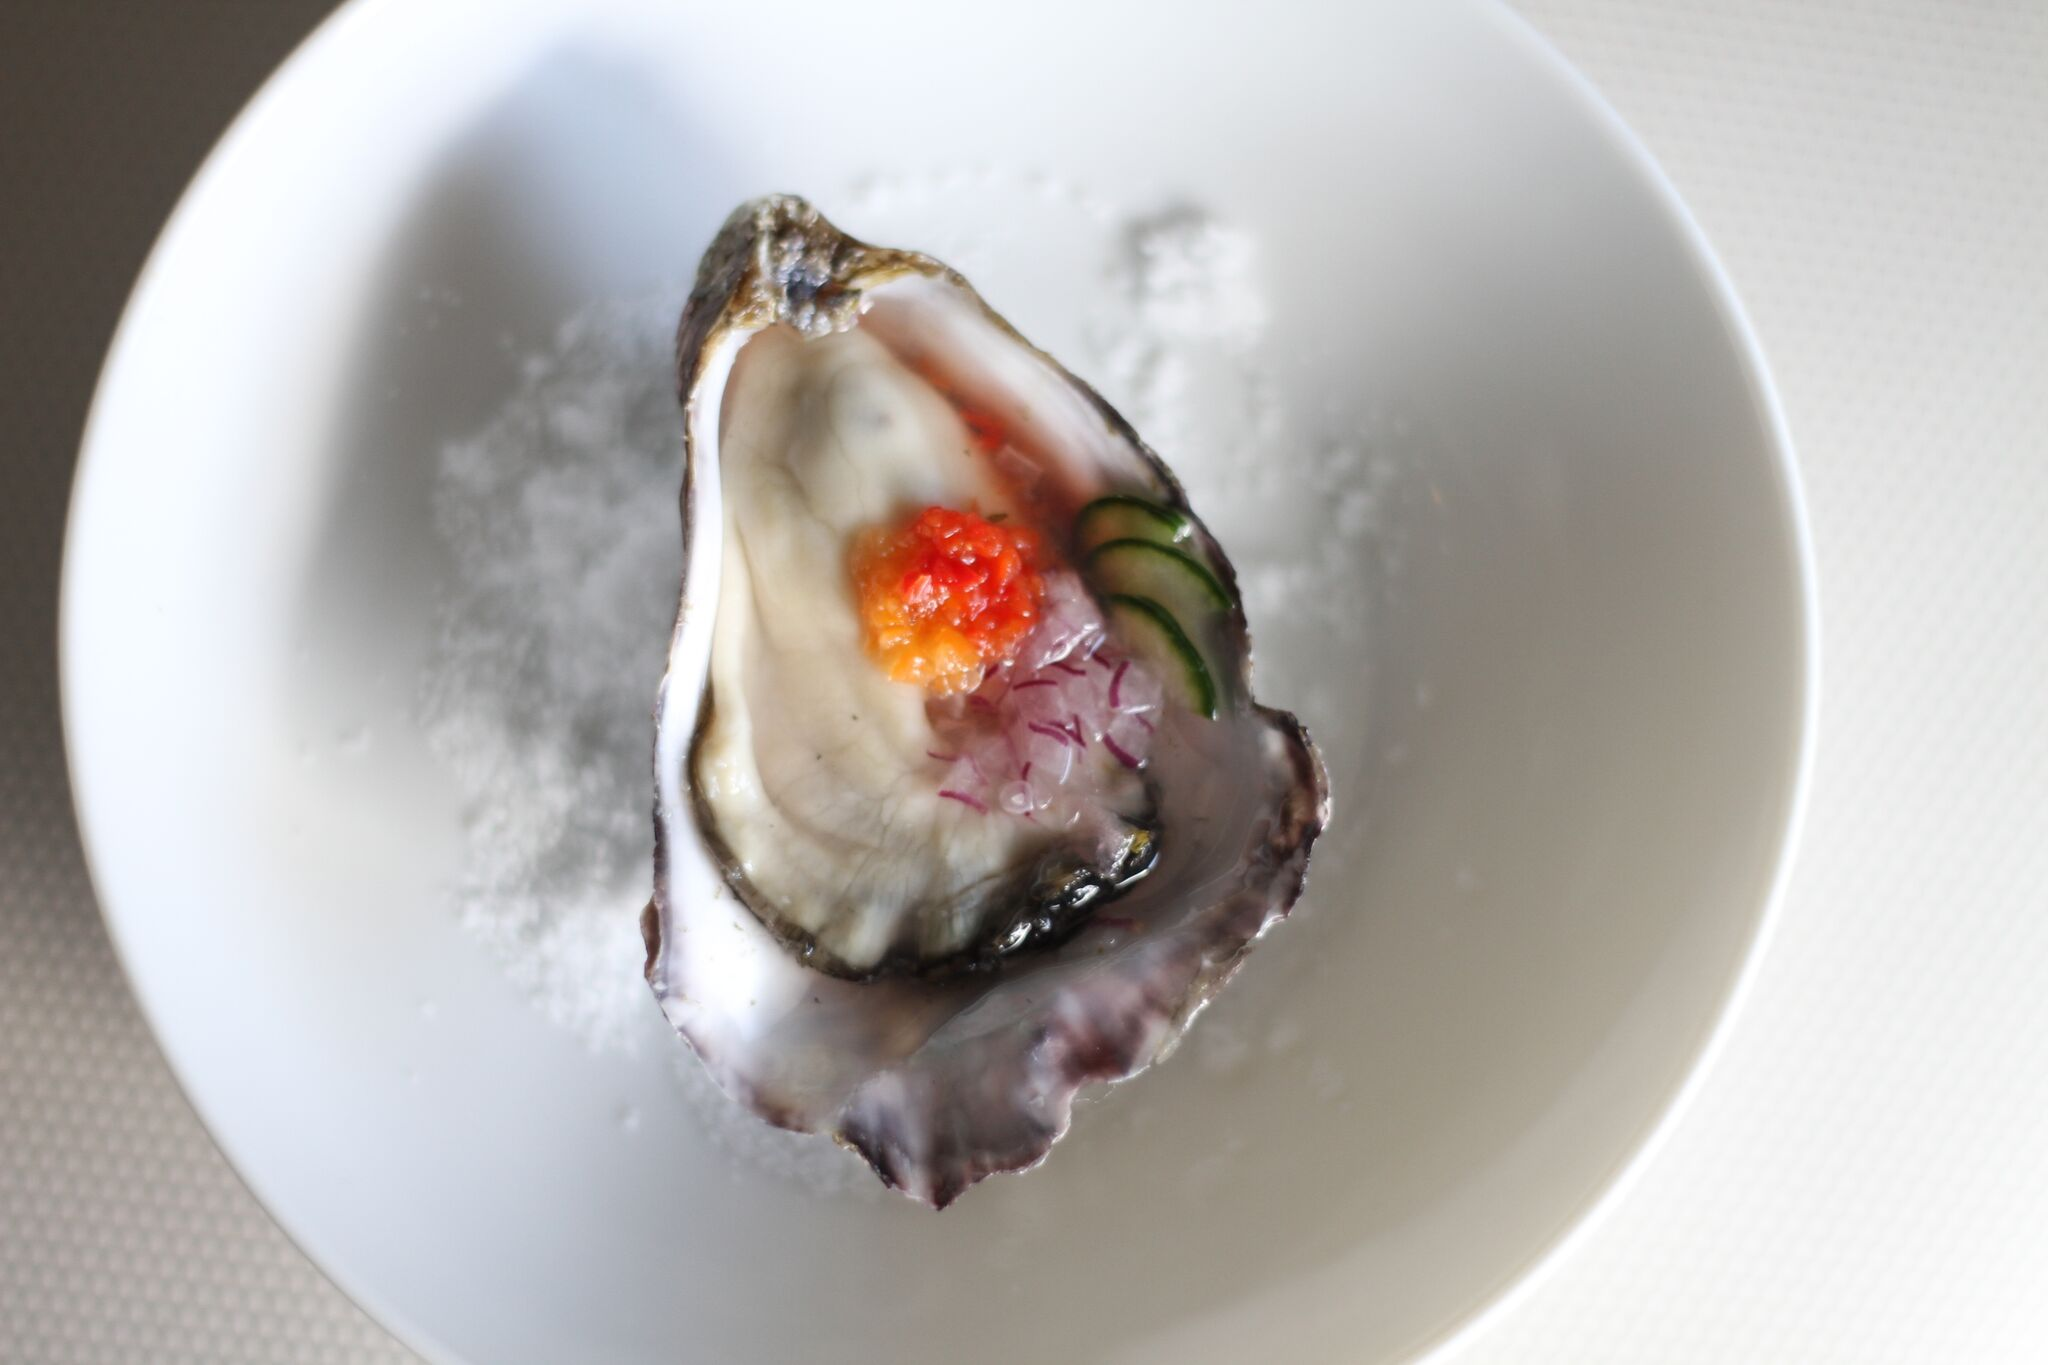 Fresh Oyster with house grated horseradish, habanero salsa and cucumber